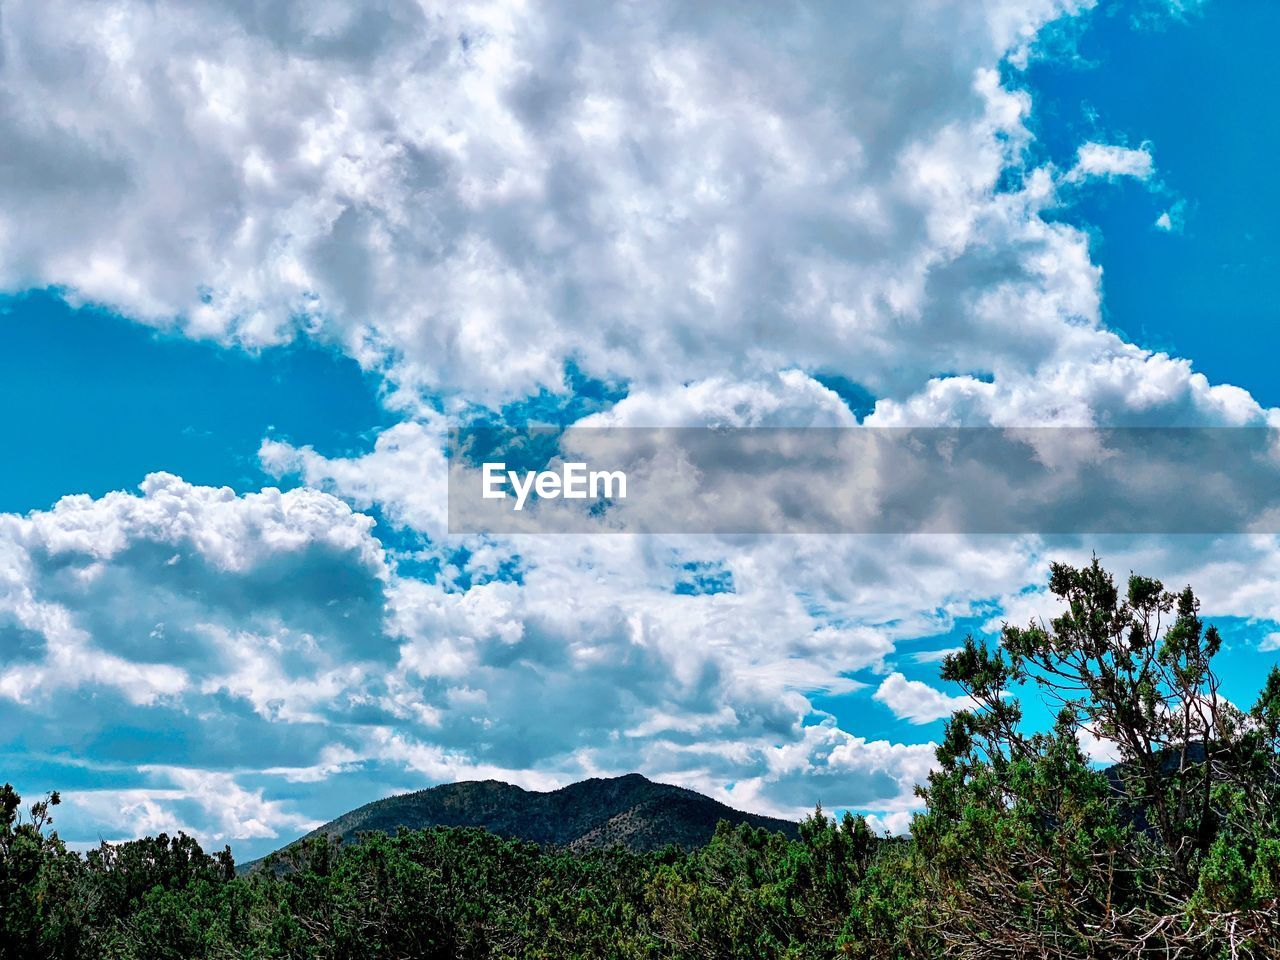 cloud - sky, sky, tree, plant, beauty in nature, scenics - nature, tranquility, tranquil scene, day, nature, no people, blue, growth, non-urban scene, outdoors, mountain, green color, low angle view, landscape, idyllic, turquoise colored